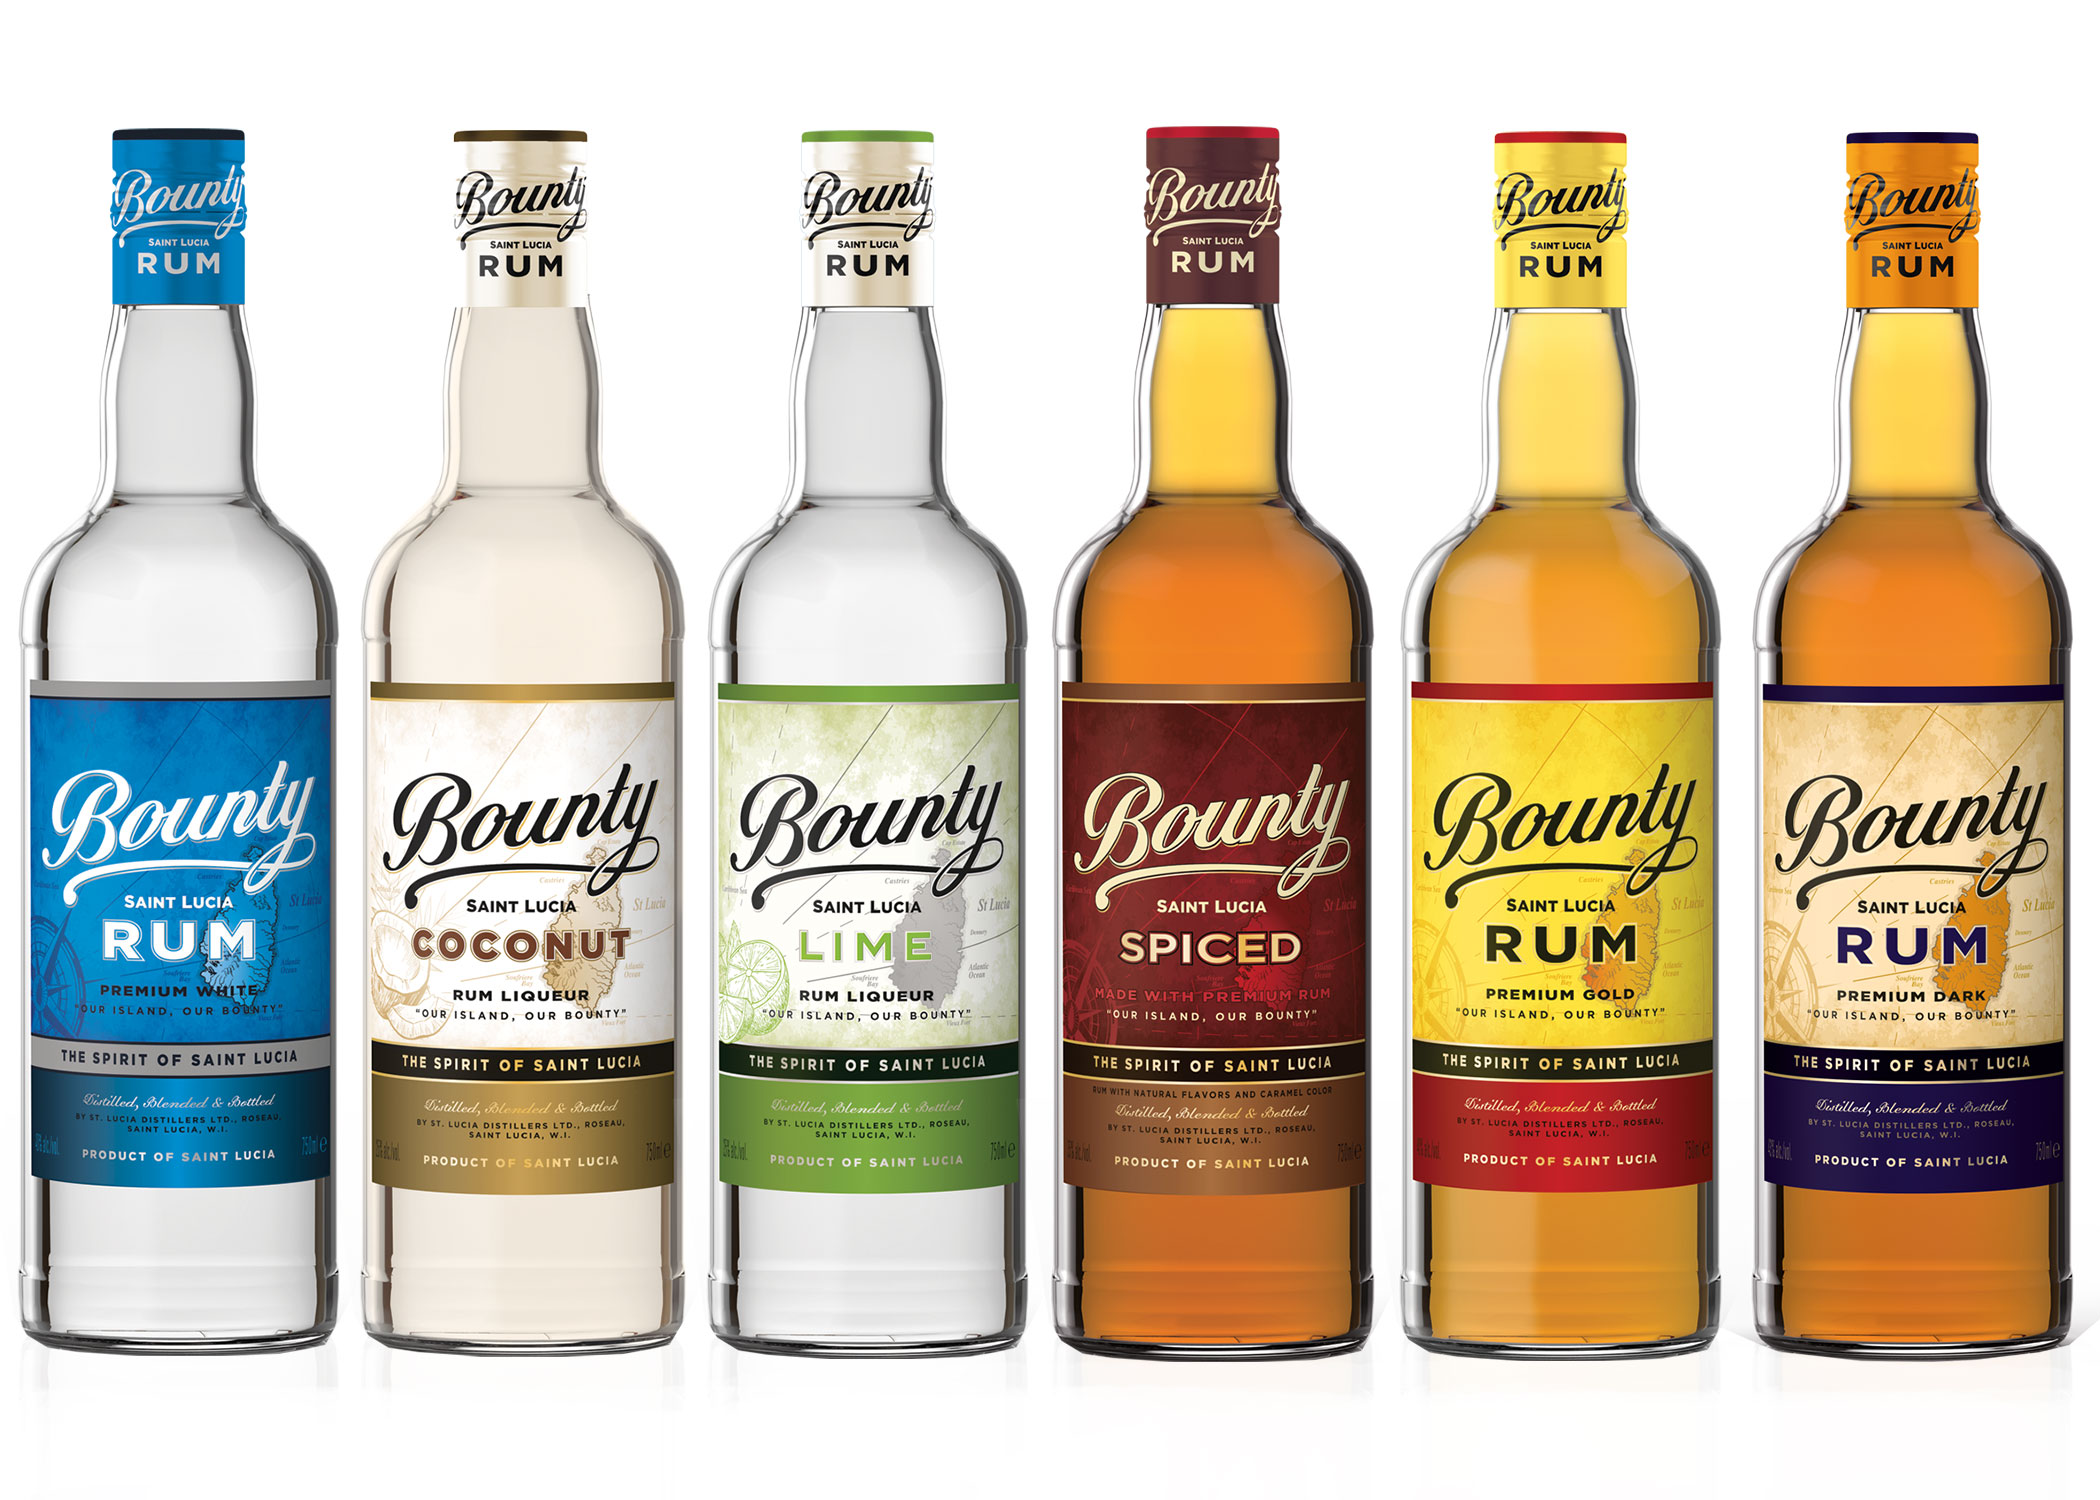 BOUNTY RUM - Bounty Rum 'The Spirit of Saint Lucia' is produced by St. Lucia Distillers and is the number one favourite on the island. It's never been exported off the island until now!